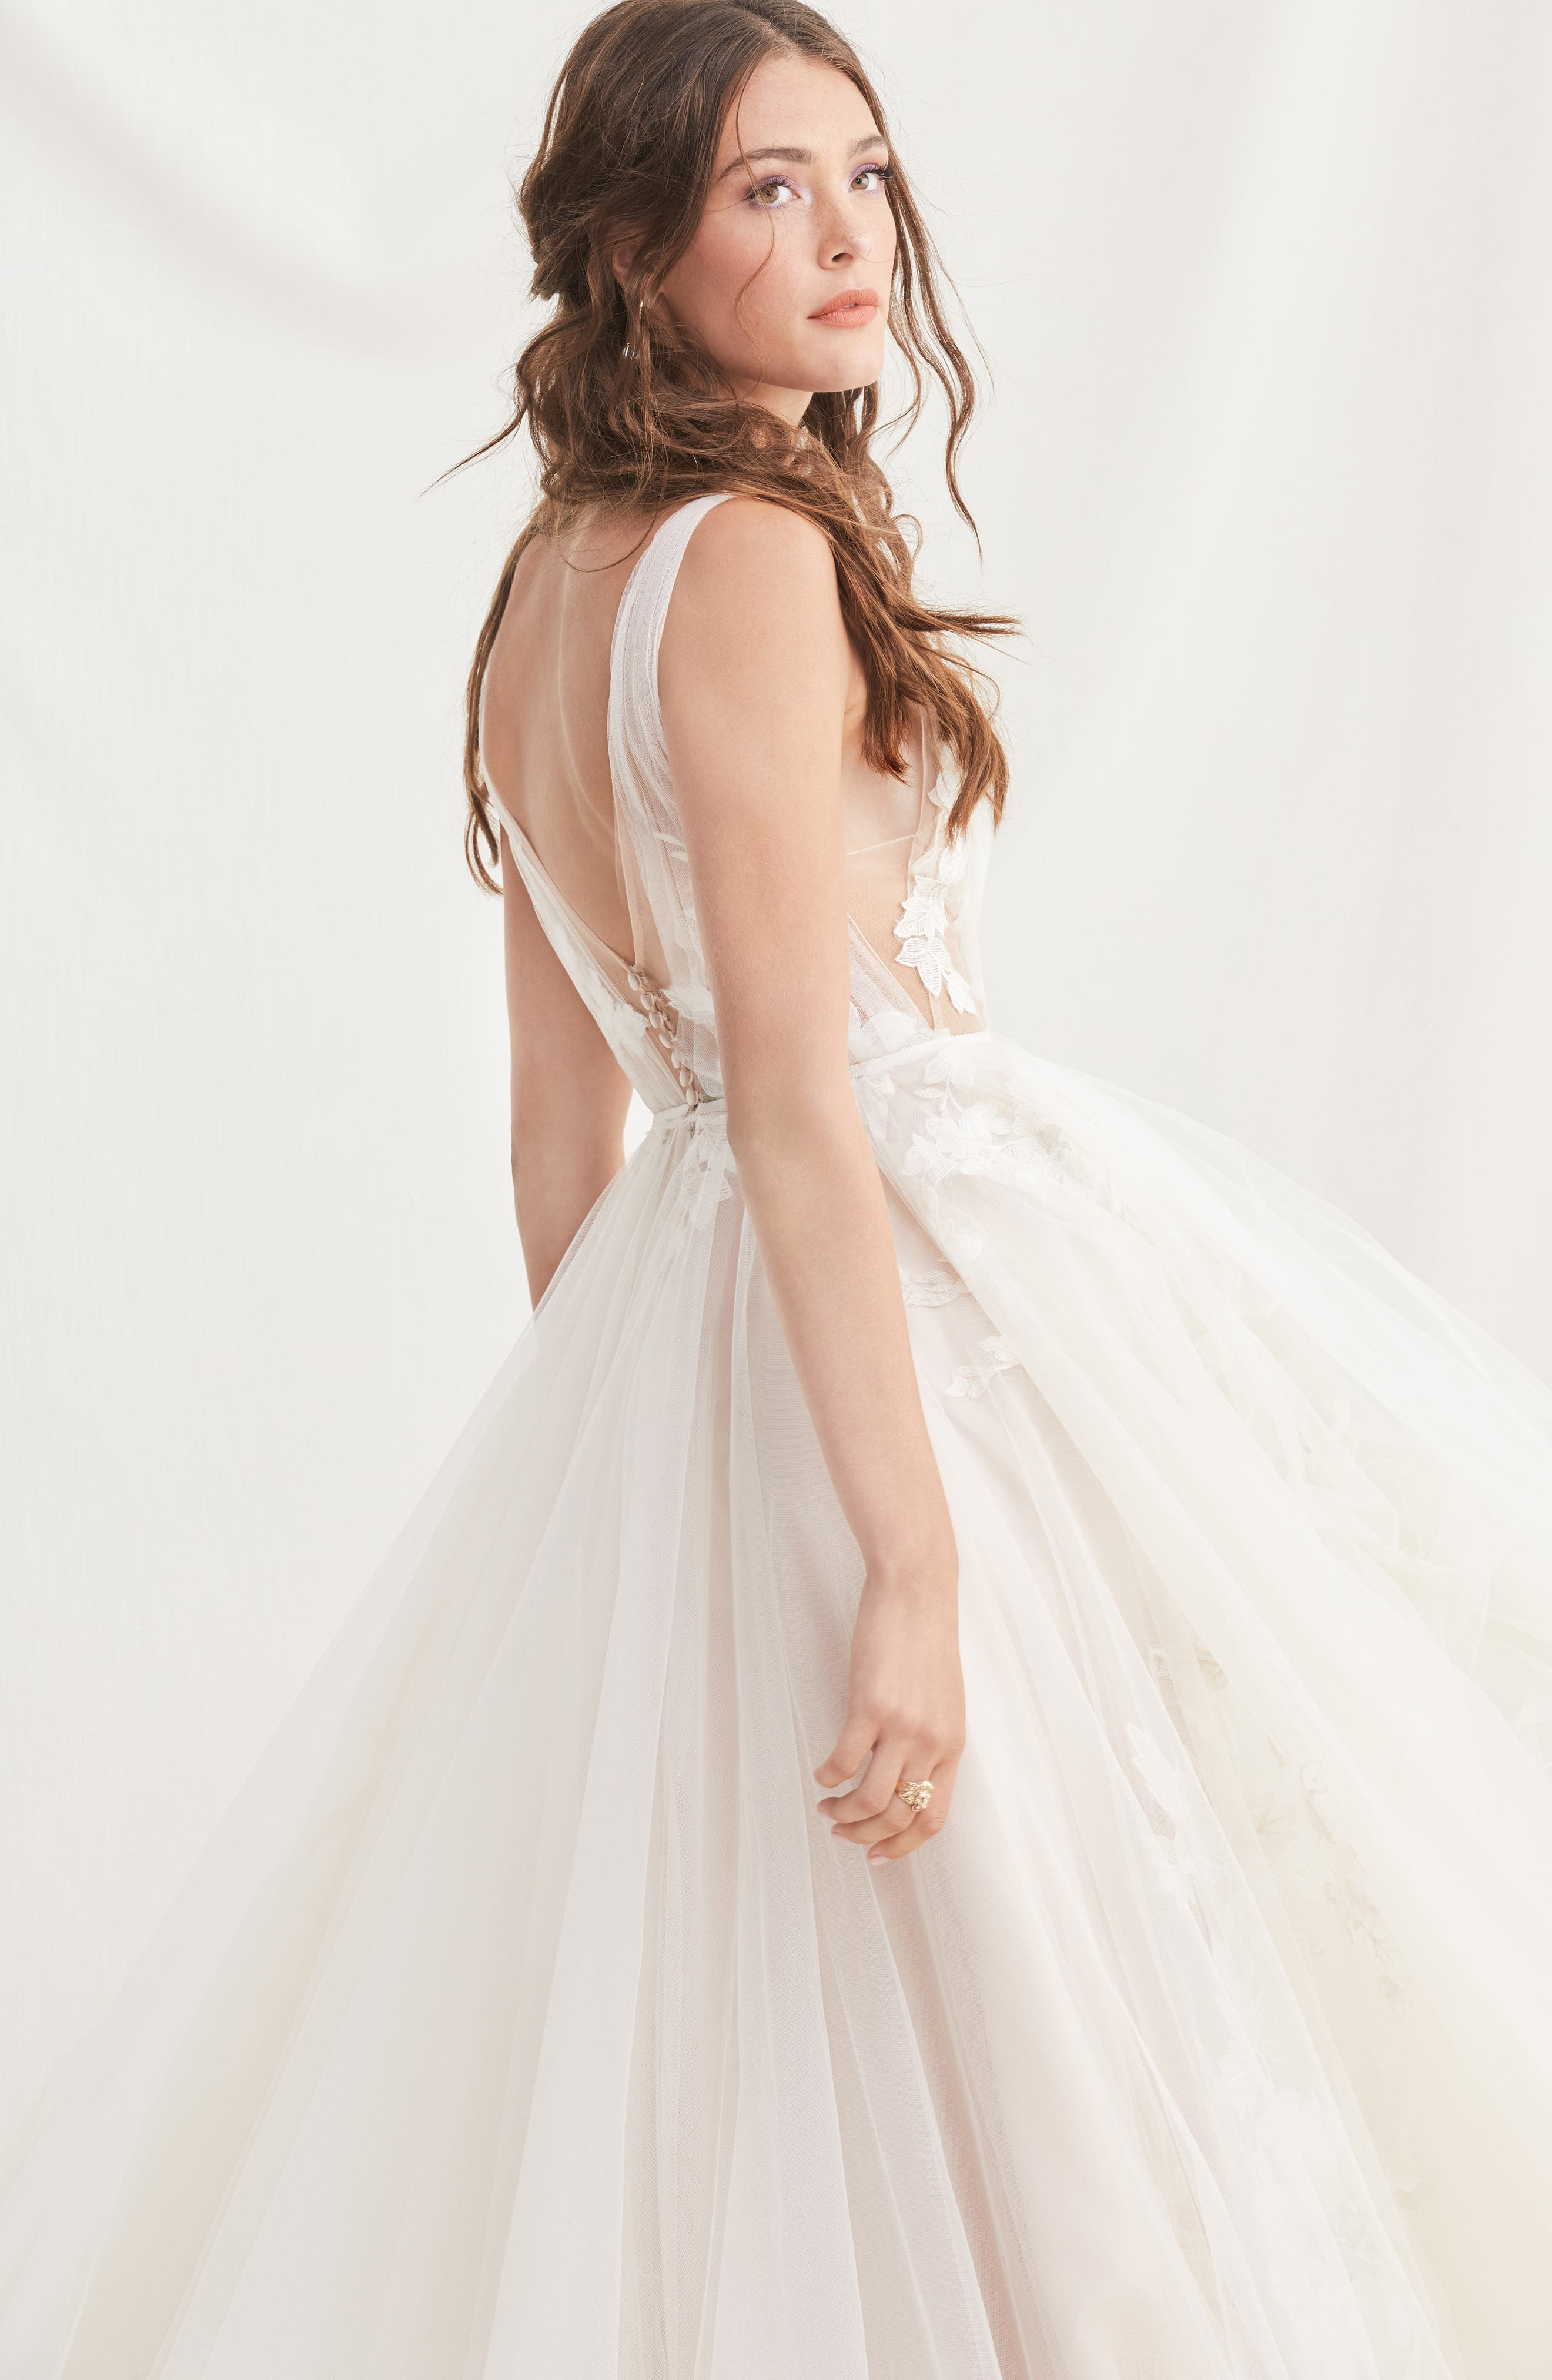 Lanie Floral Appliqué & Tulle A-Line Wedding Dress,                             Alternate thumbnail 3, color,                             900